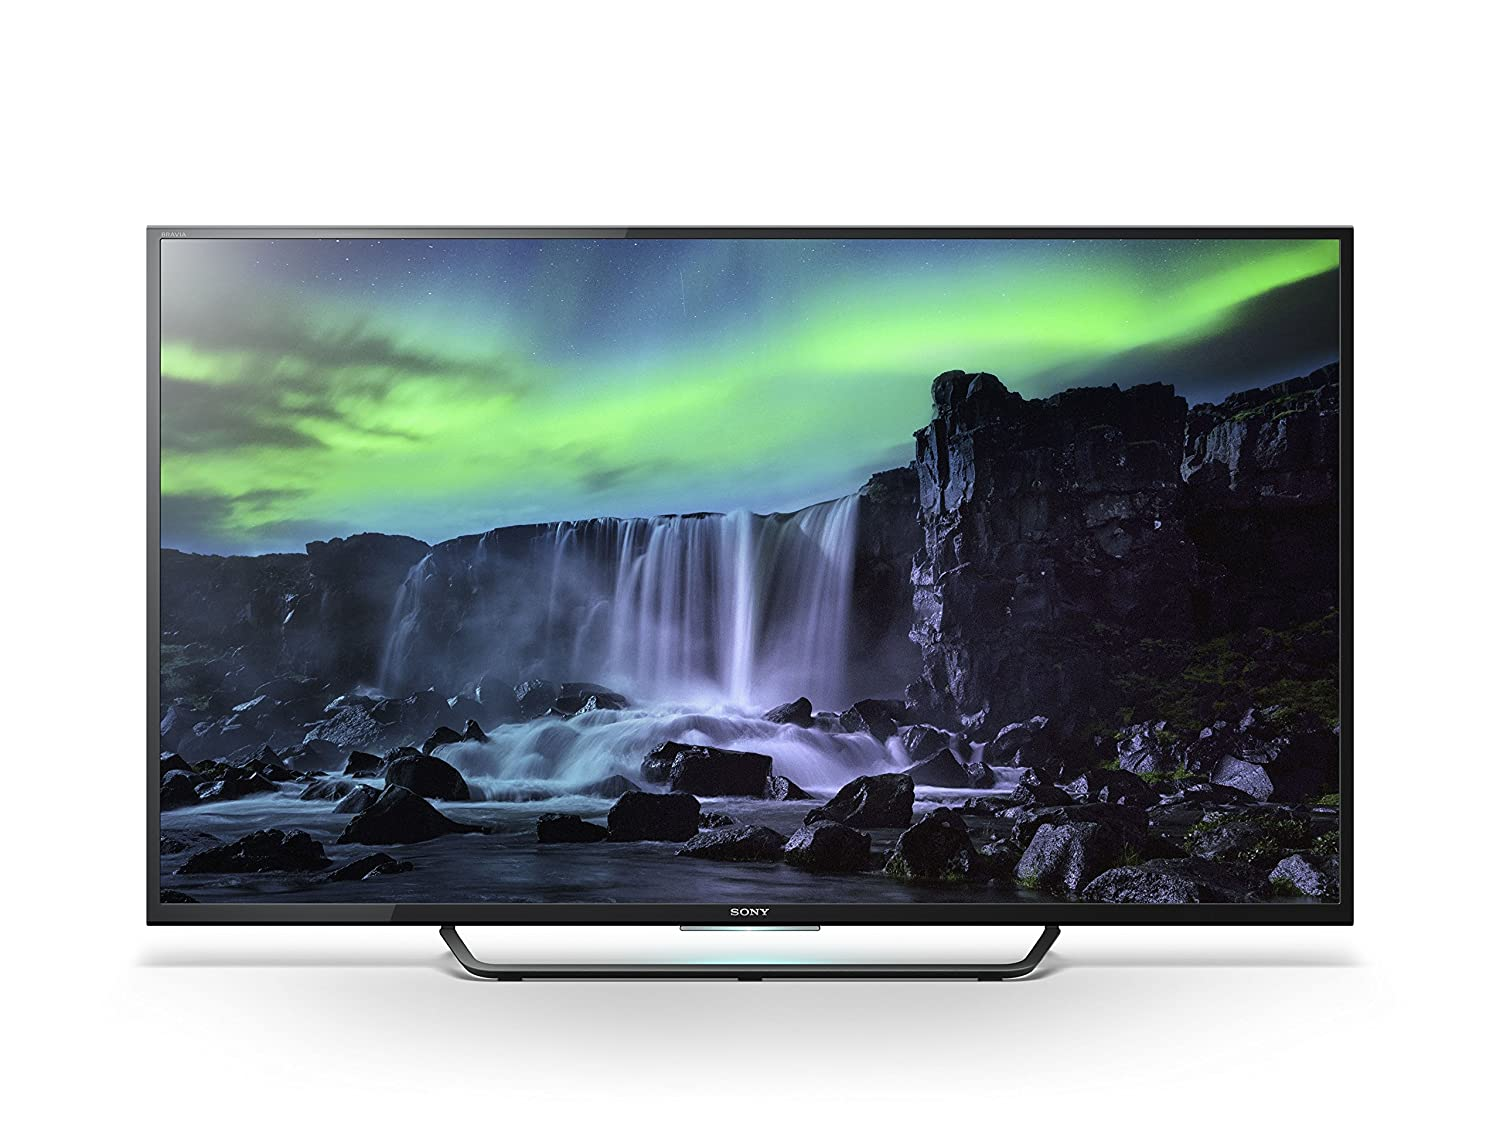 Sony KD-55X8005C 55 inch 4K UHD Widescreen Smart TV with Freeview - Black